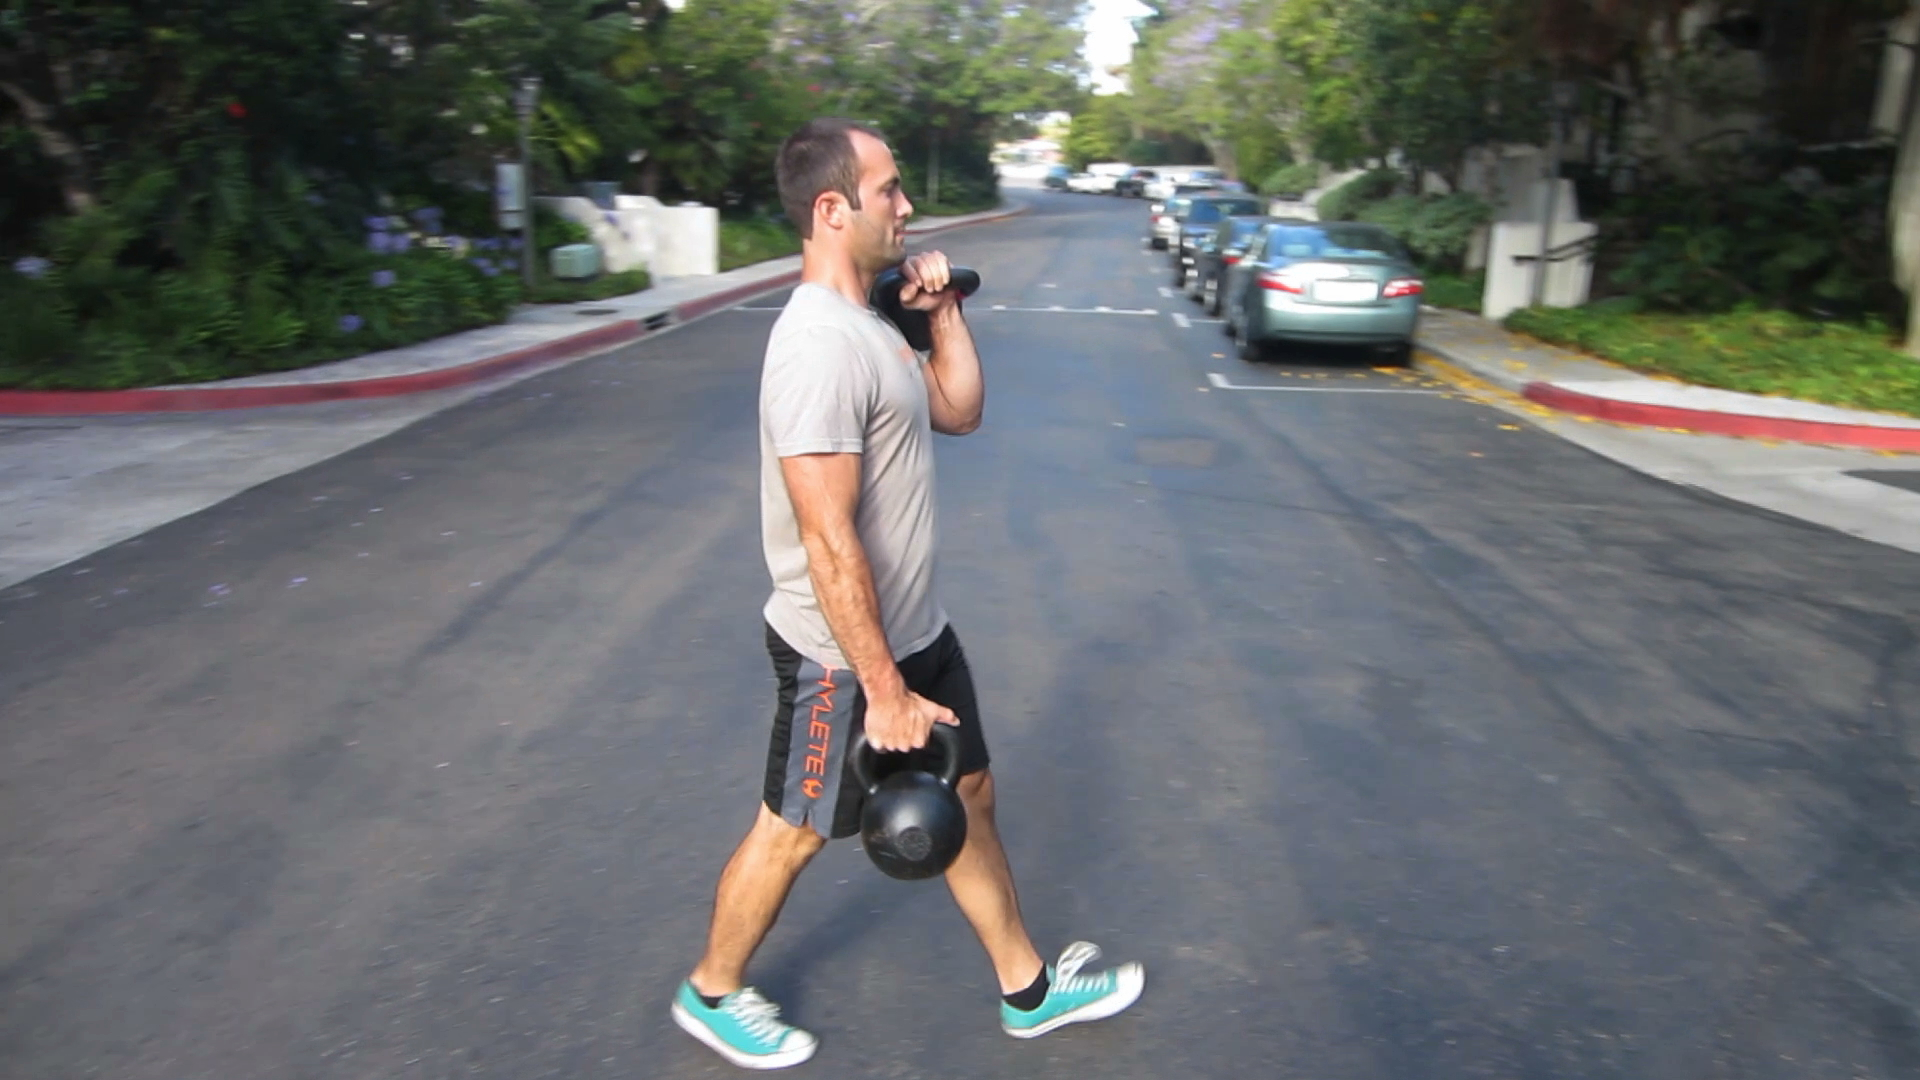 12 Loaded Carries With Kettlebells Strong Made Simple San Diego Circuit Training Kettlebell Climb Muscle Fitness Personal Trainer